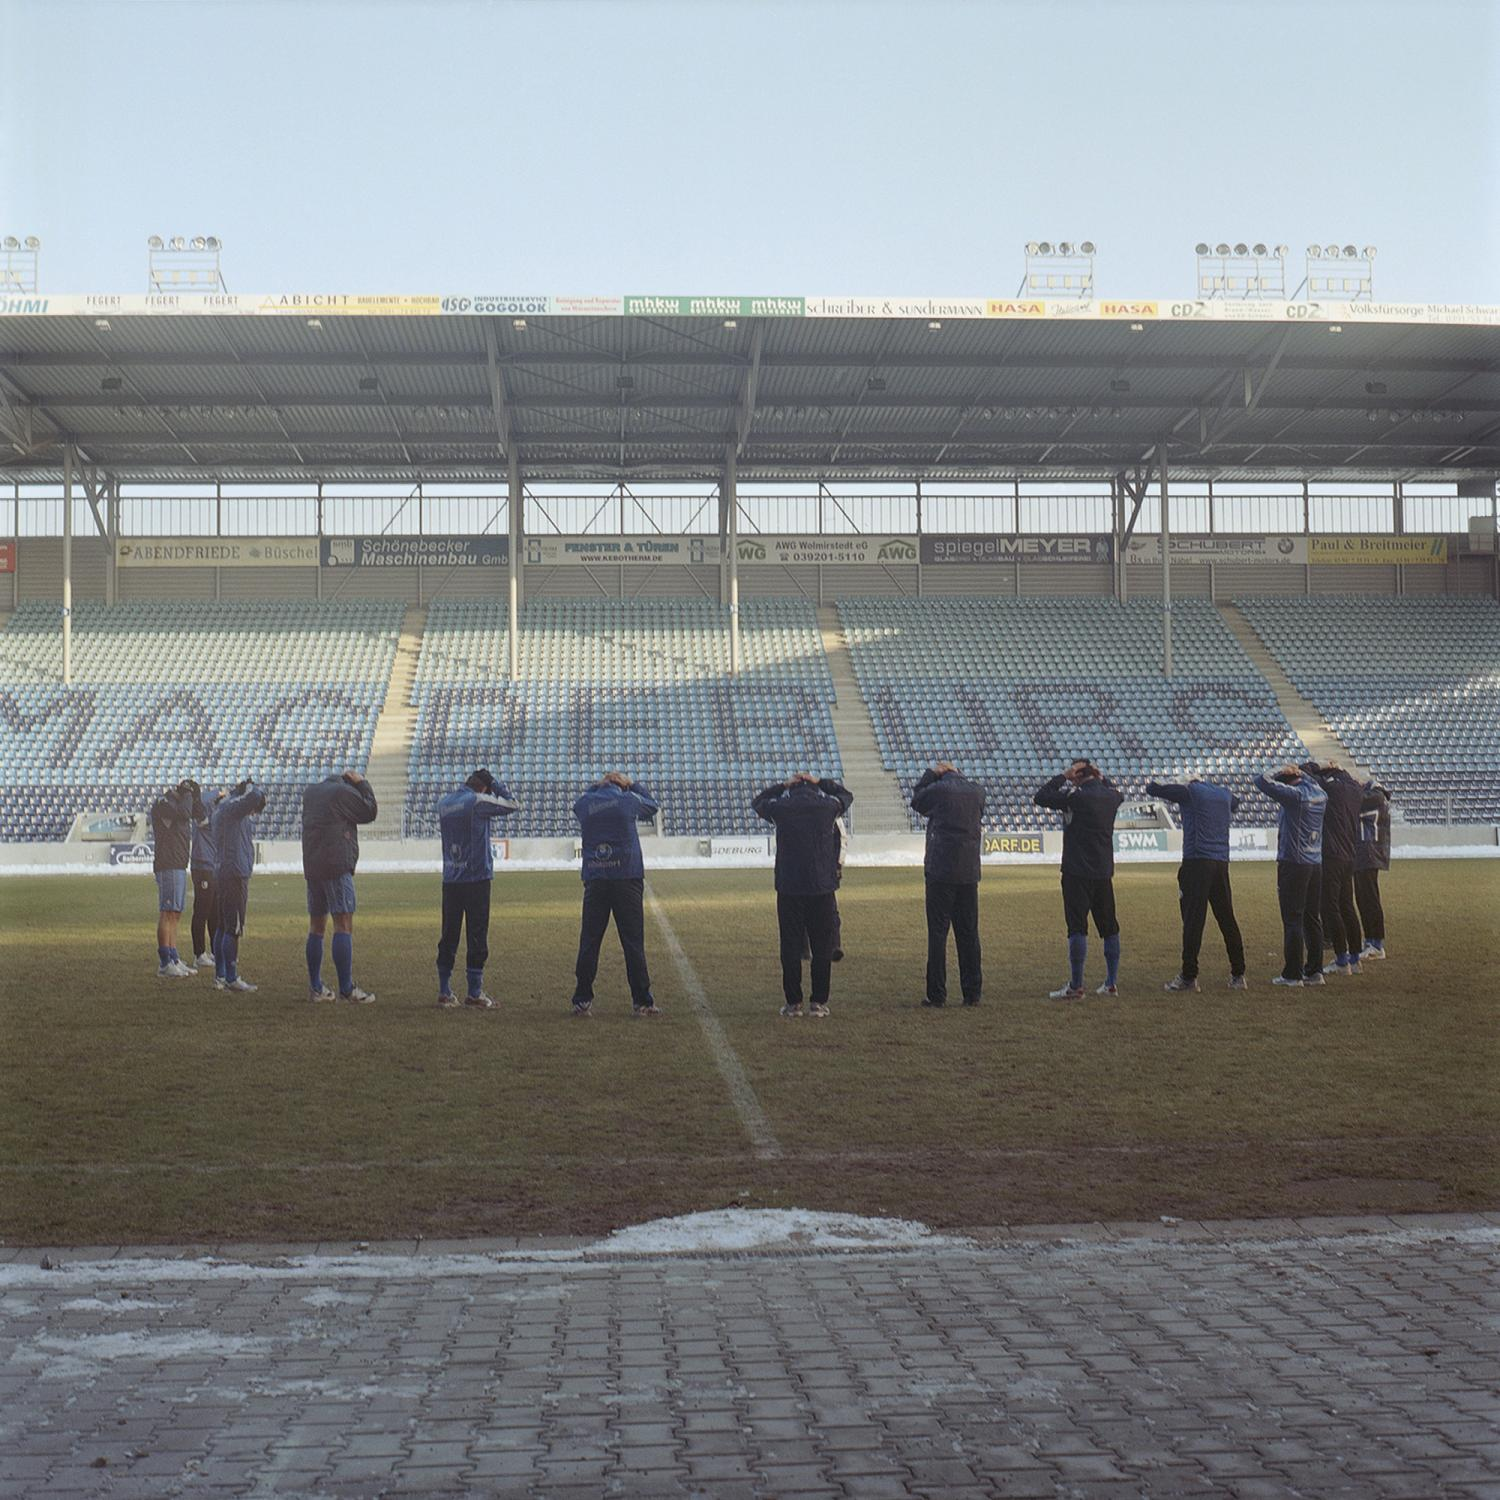 The team stretches on the main field after an official game on a cold winter Sunday, in Magdeburg.